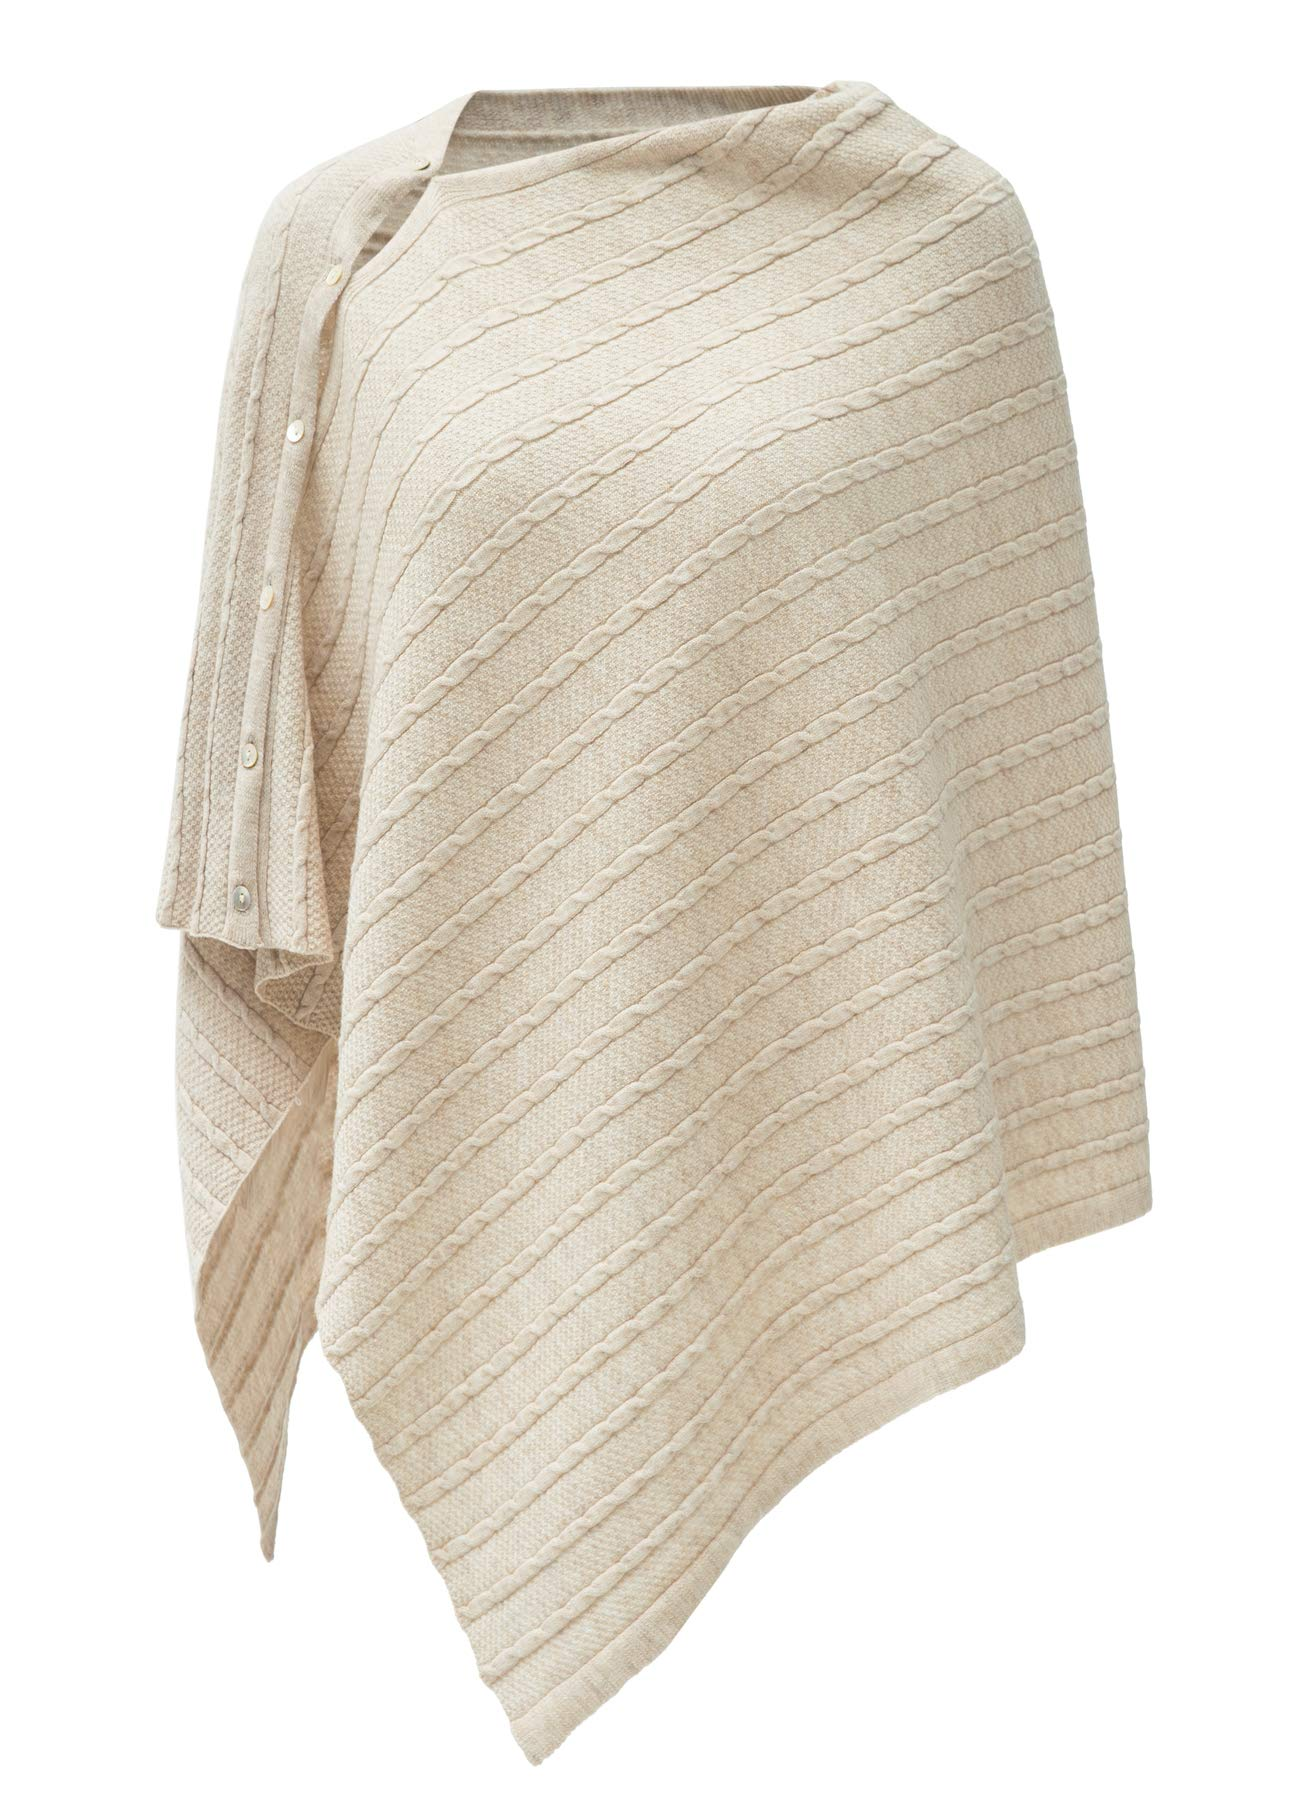 Womens Cable Pattern Lightweight Kintted Poncho Sweater with Shell Button, Versatile Scarf Shawl Cape for Spring Summer Autumn, Barley Twist